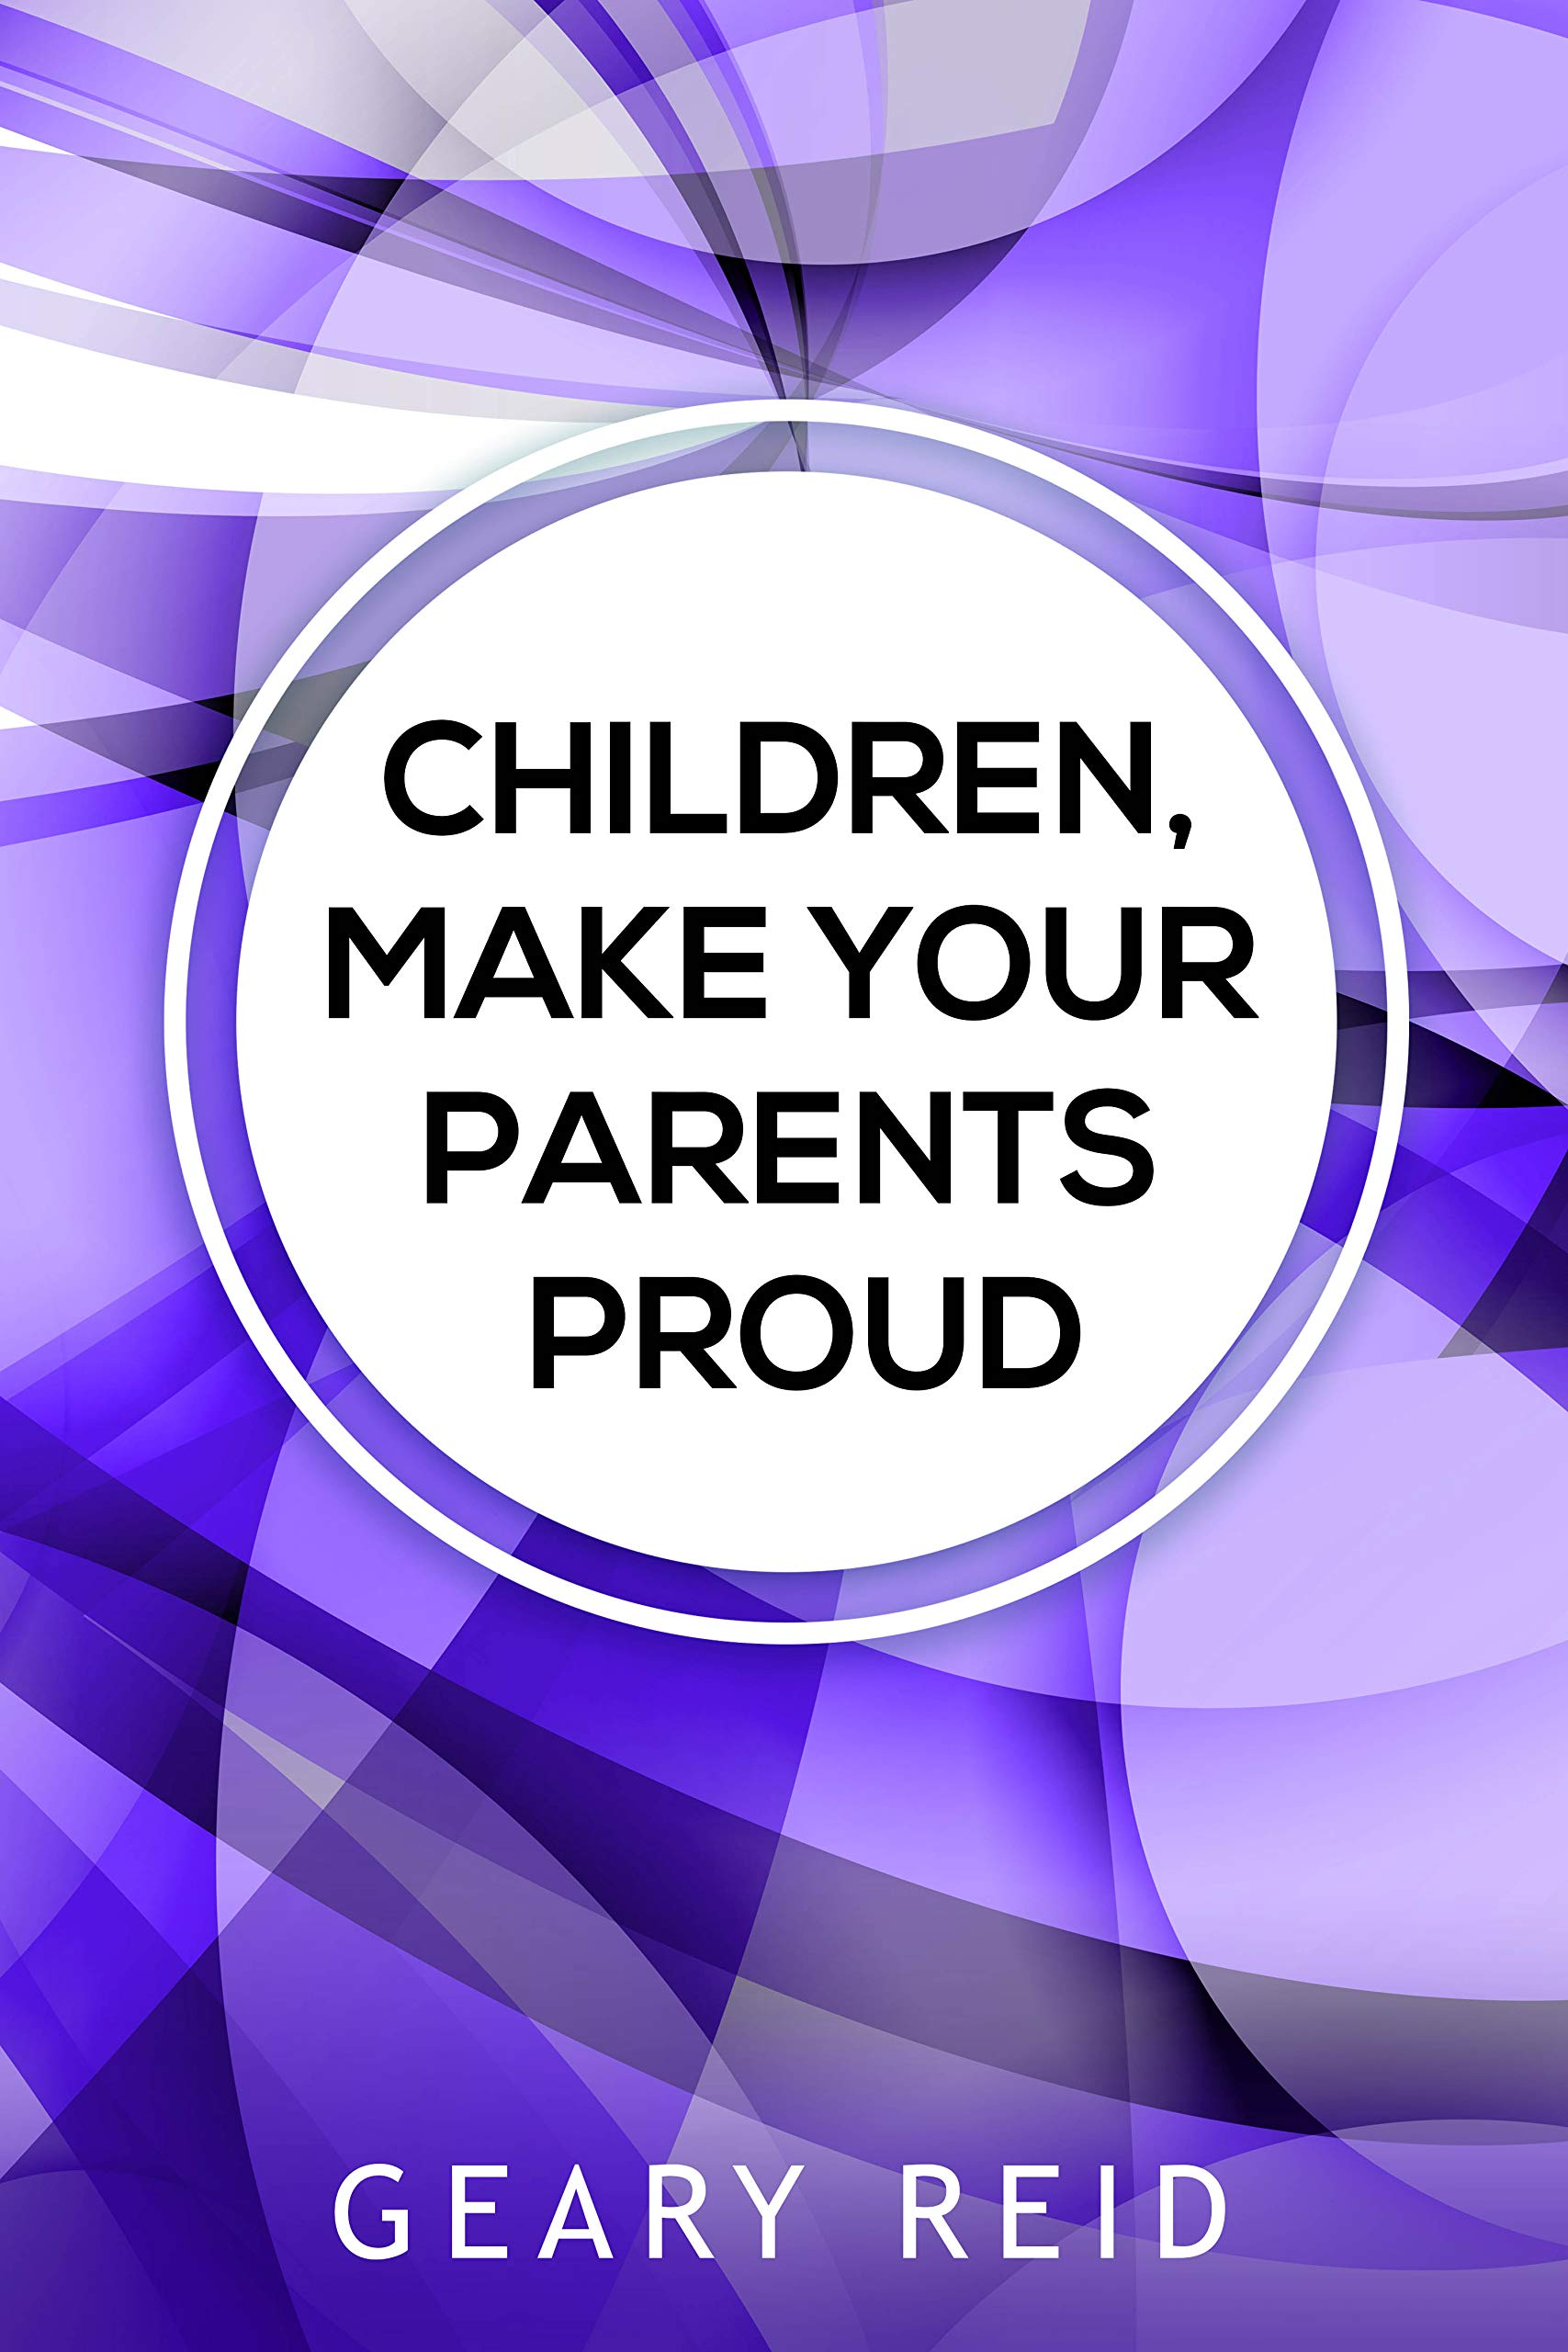 Children, Make Your Parents Proud: Reid offers advice to help children build relationships with their parents based on communication, love, and mutual respect while taking steps toward a healthy life